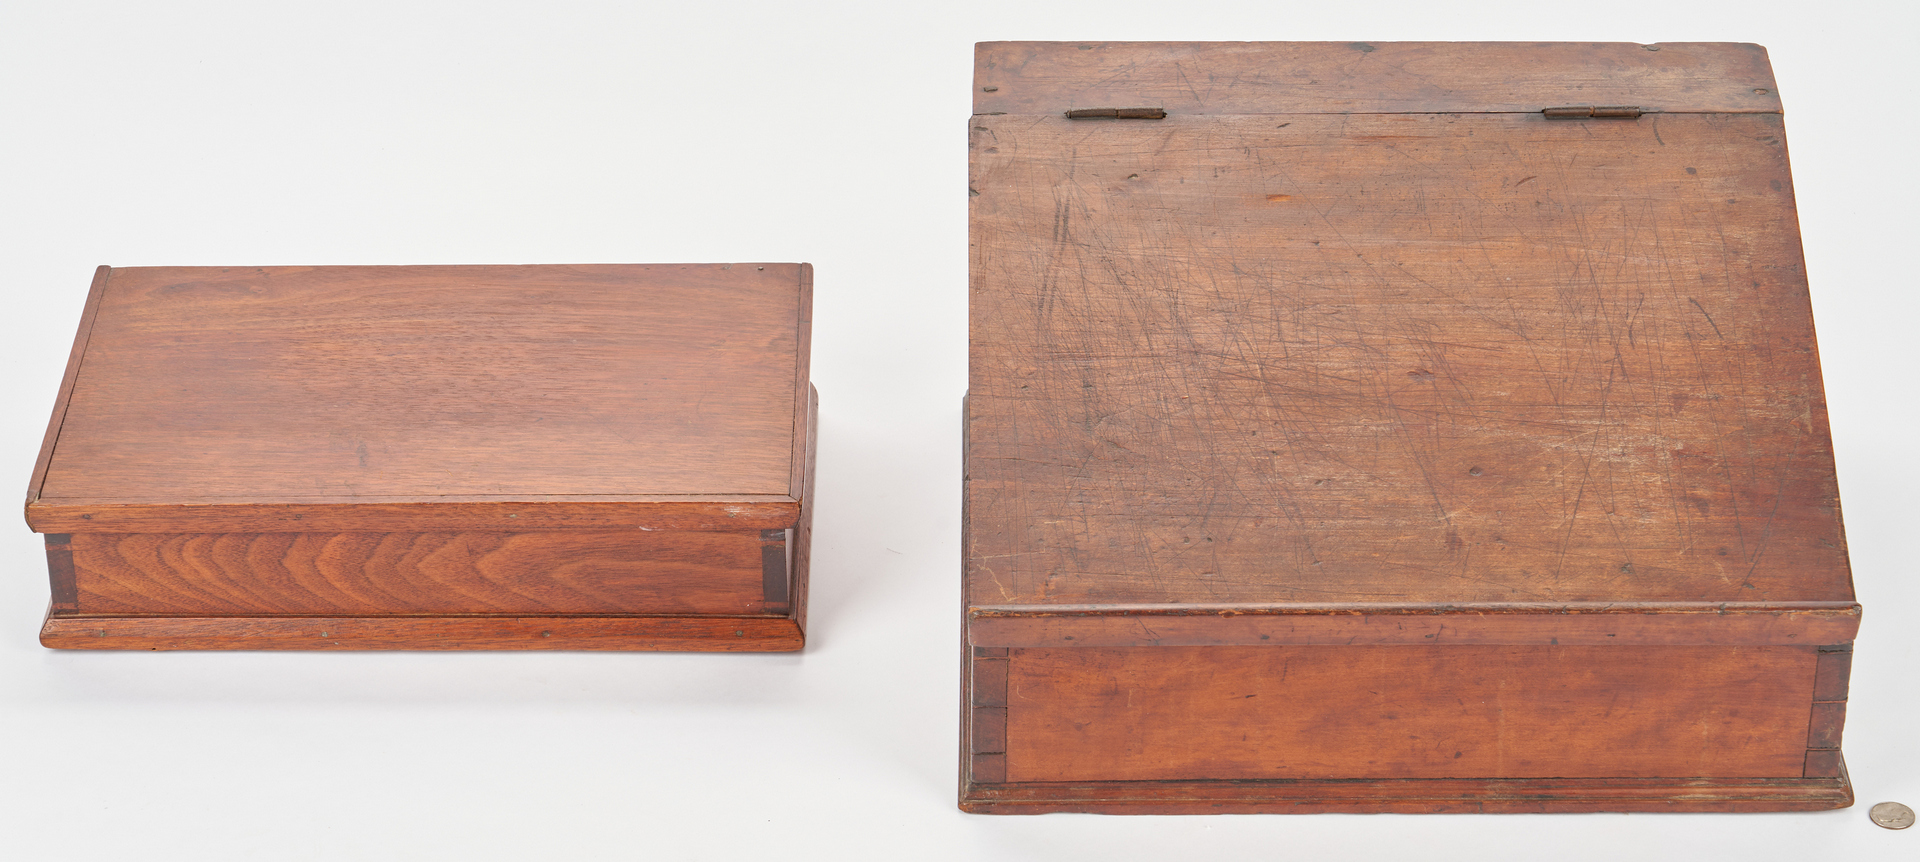 Lot 369: Southern Dovetailed Tabletop Desk & Sewing Box, Poss. TN